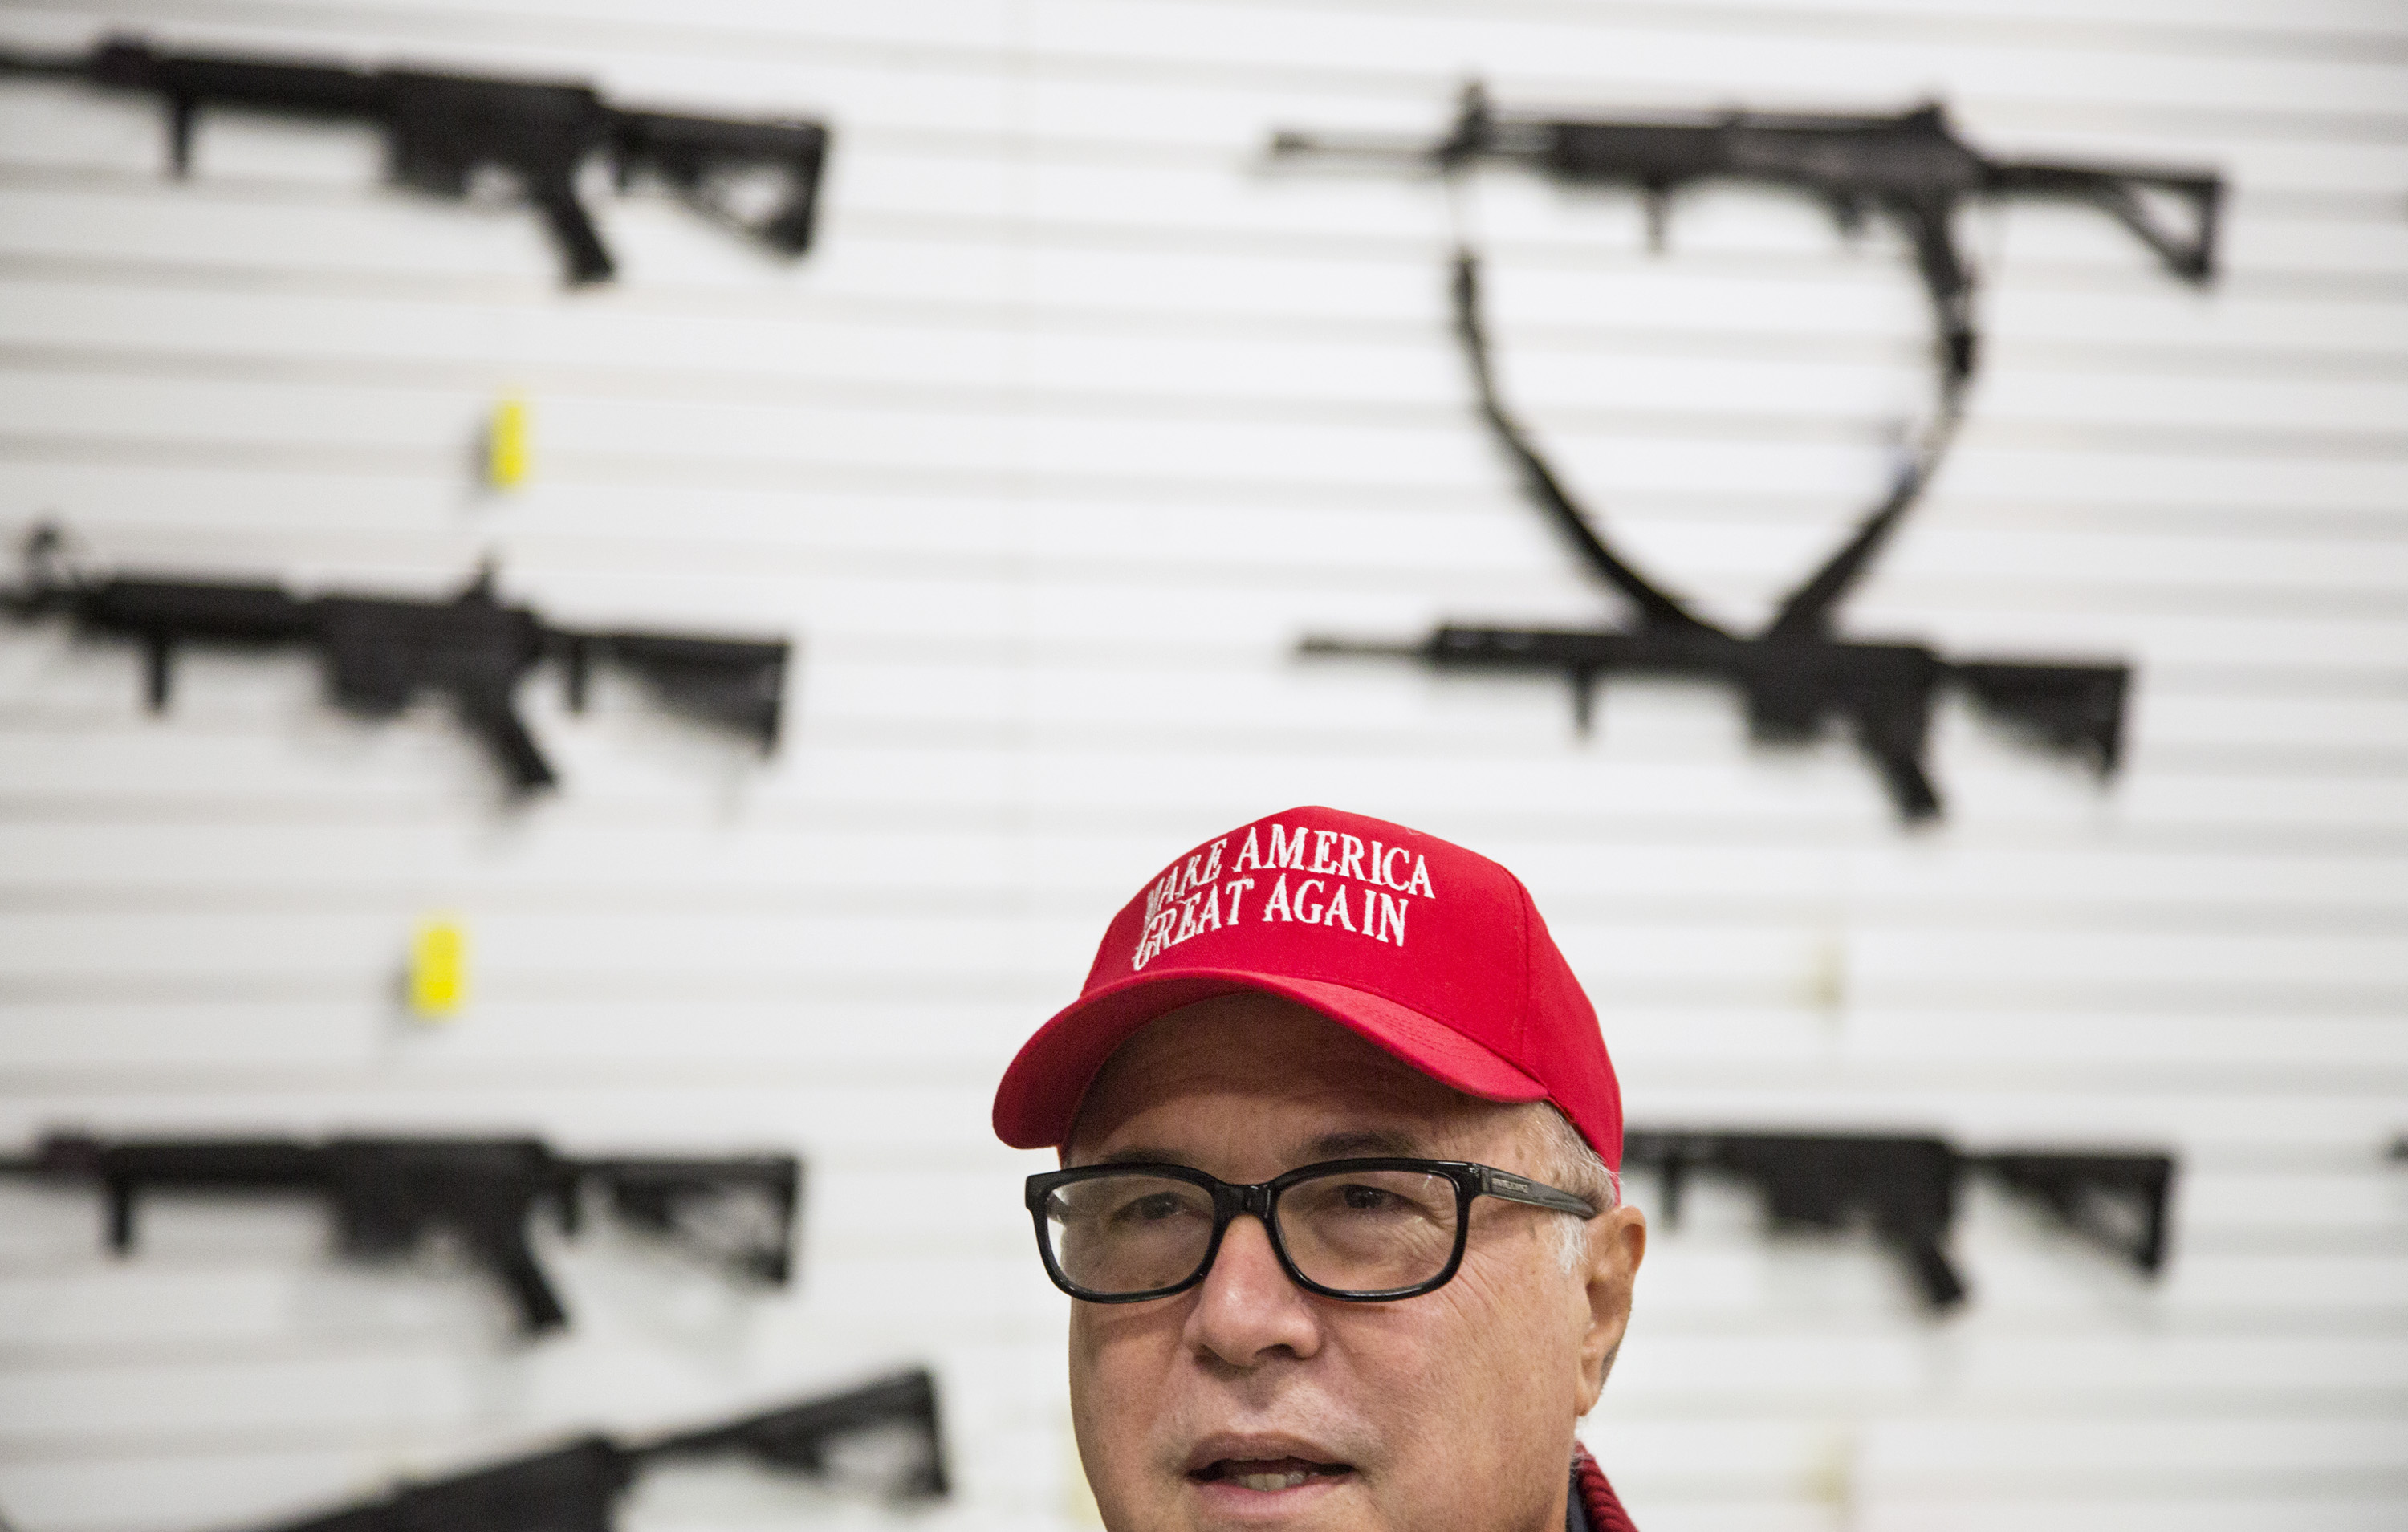 A man in a MAGA hat in front of a gun shop display wall.